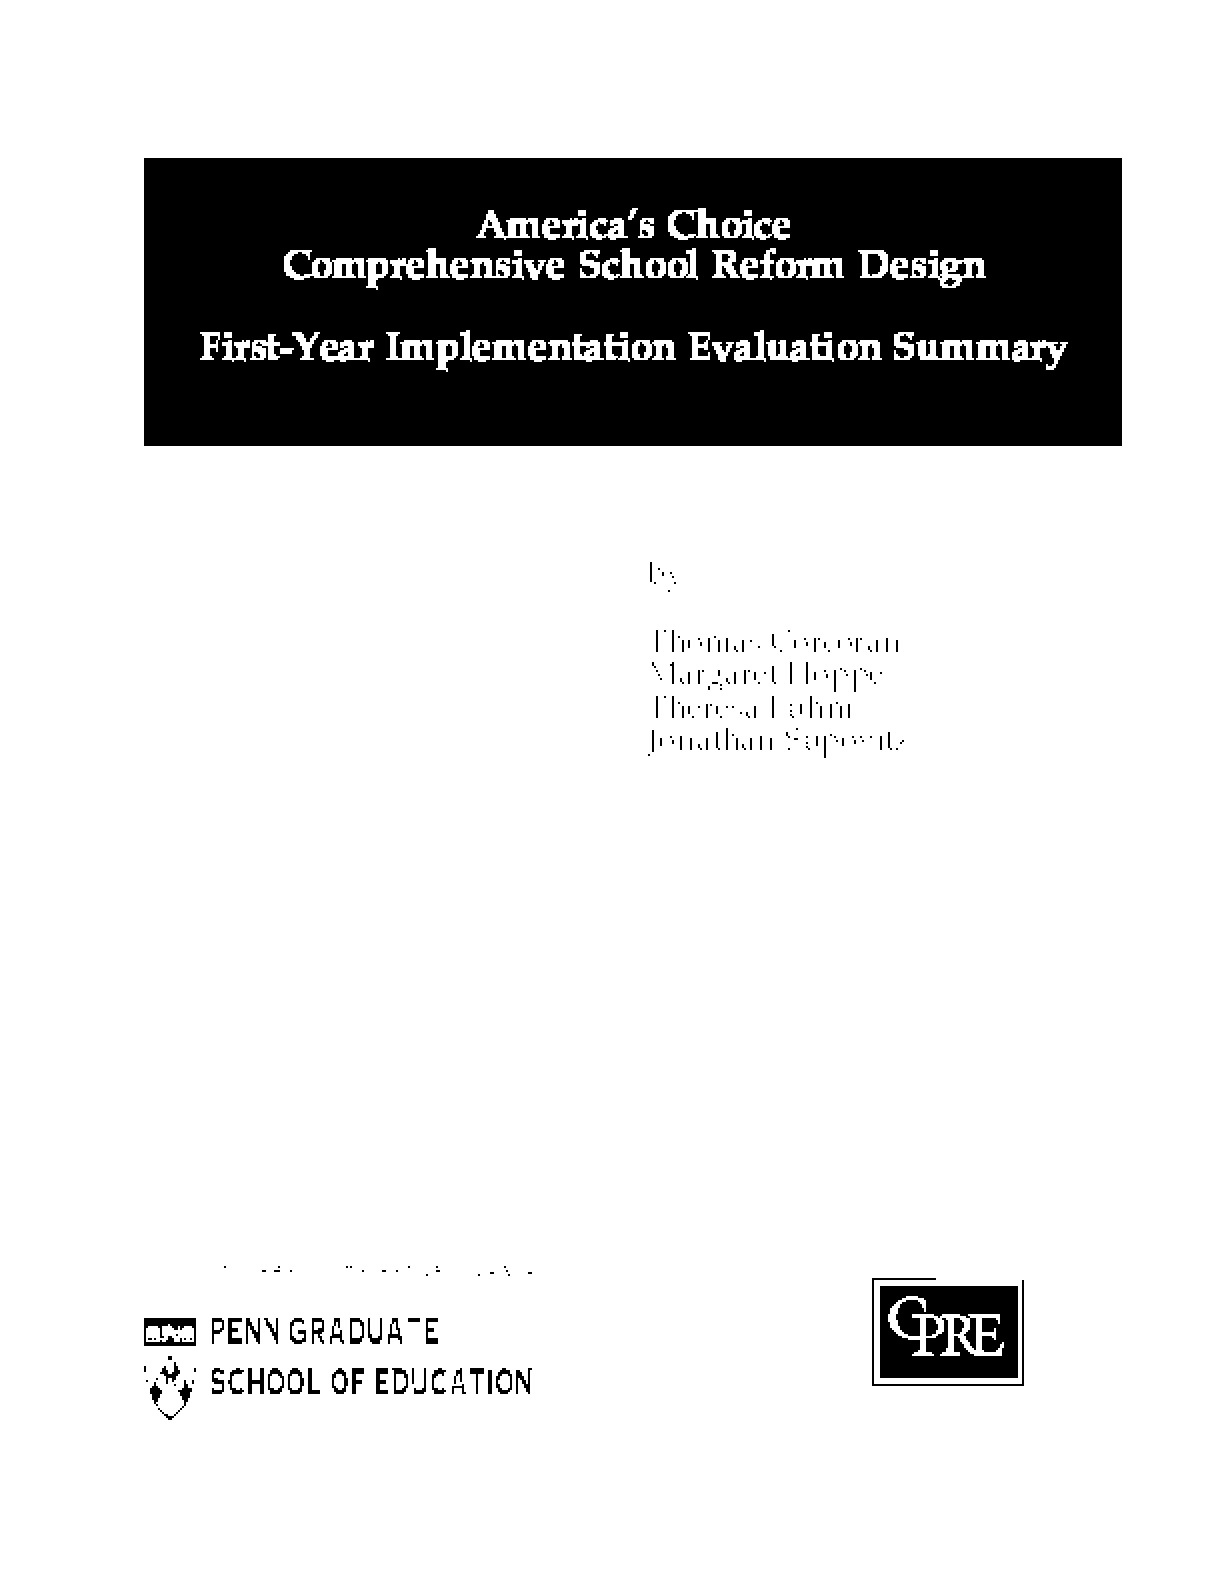 America's Choice Comprehensive School Reform Design: First-Year Implementation Evaluation Summary